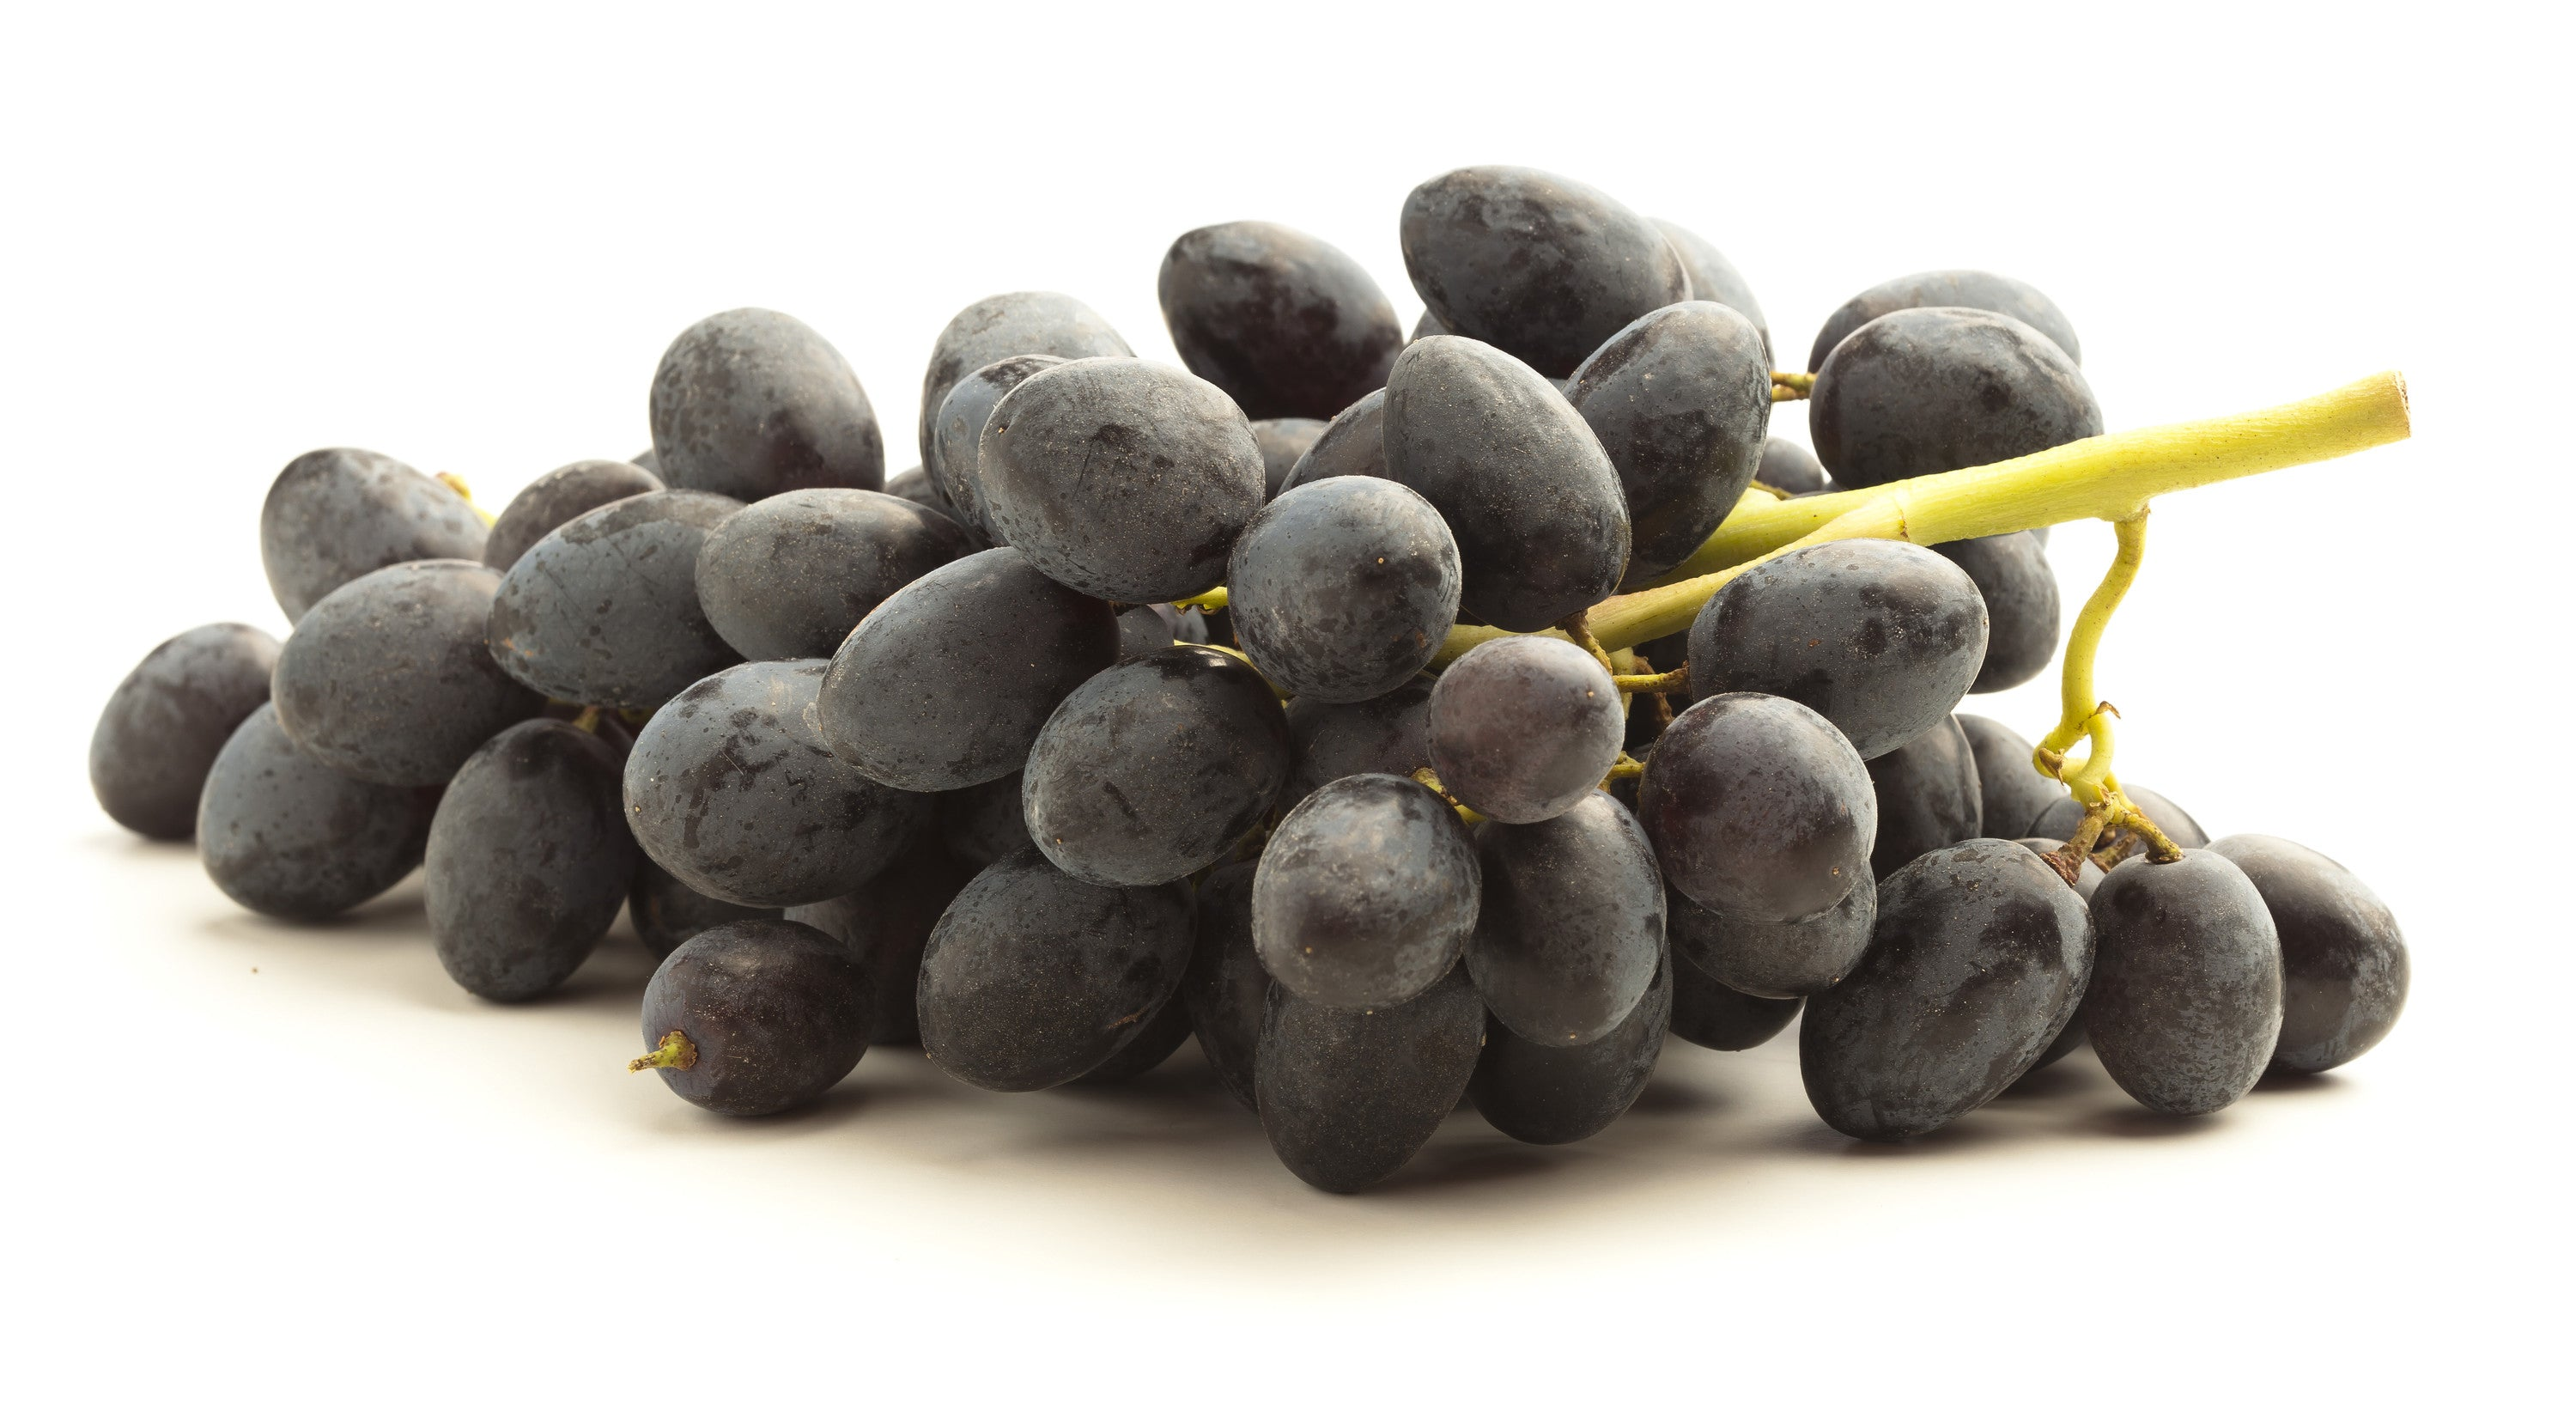 Australia Melody Black Seedless Grapes (500g)